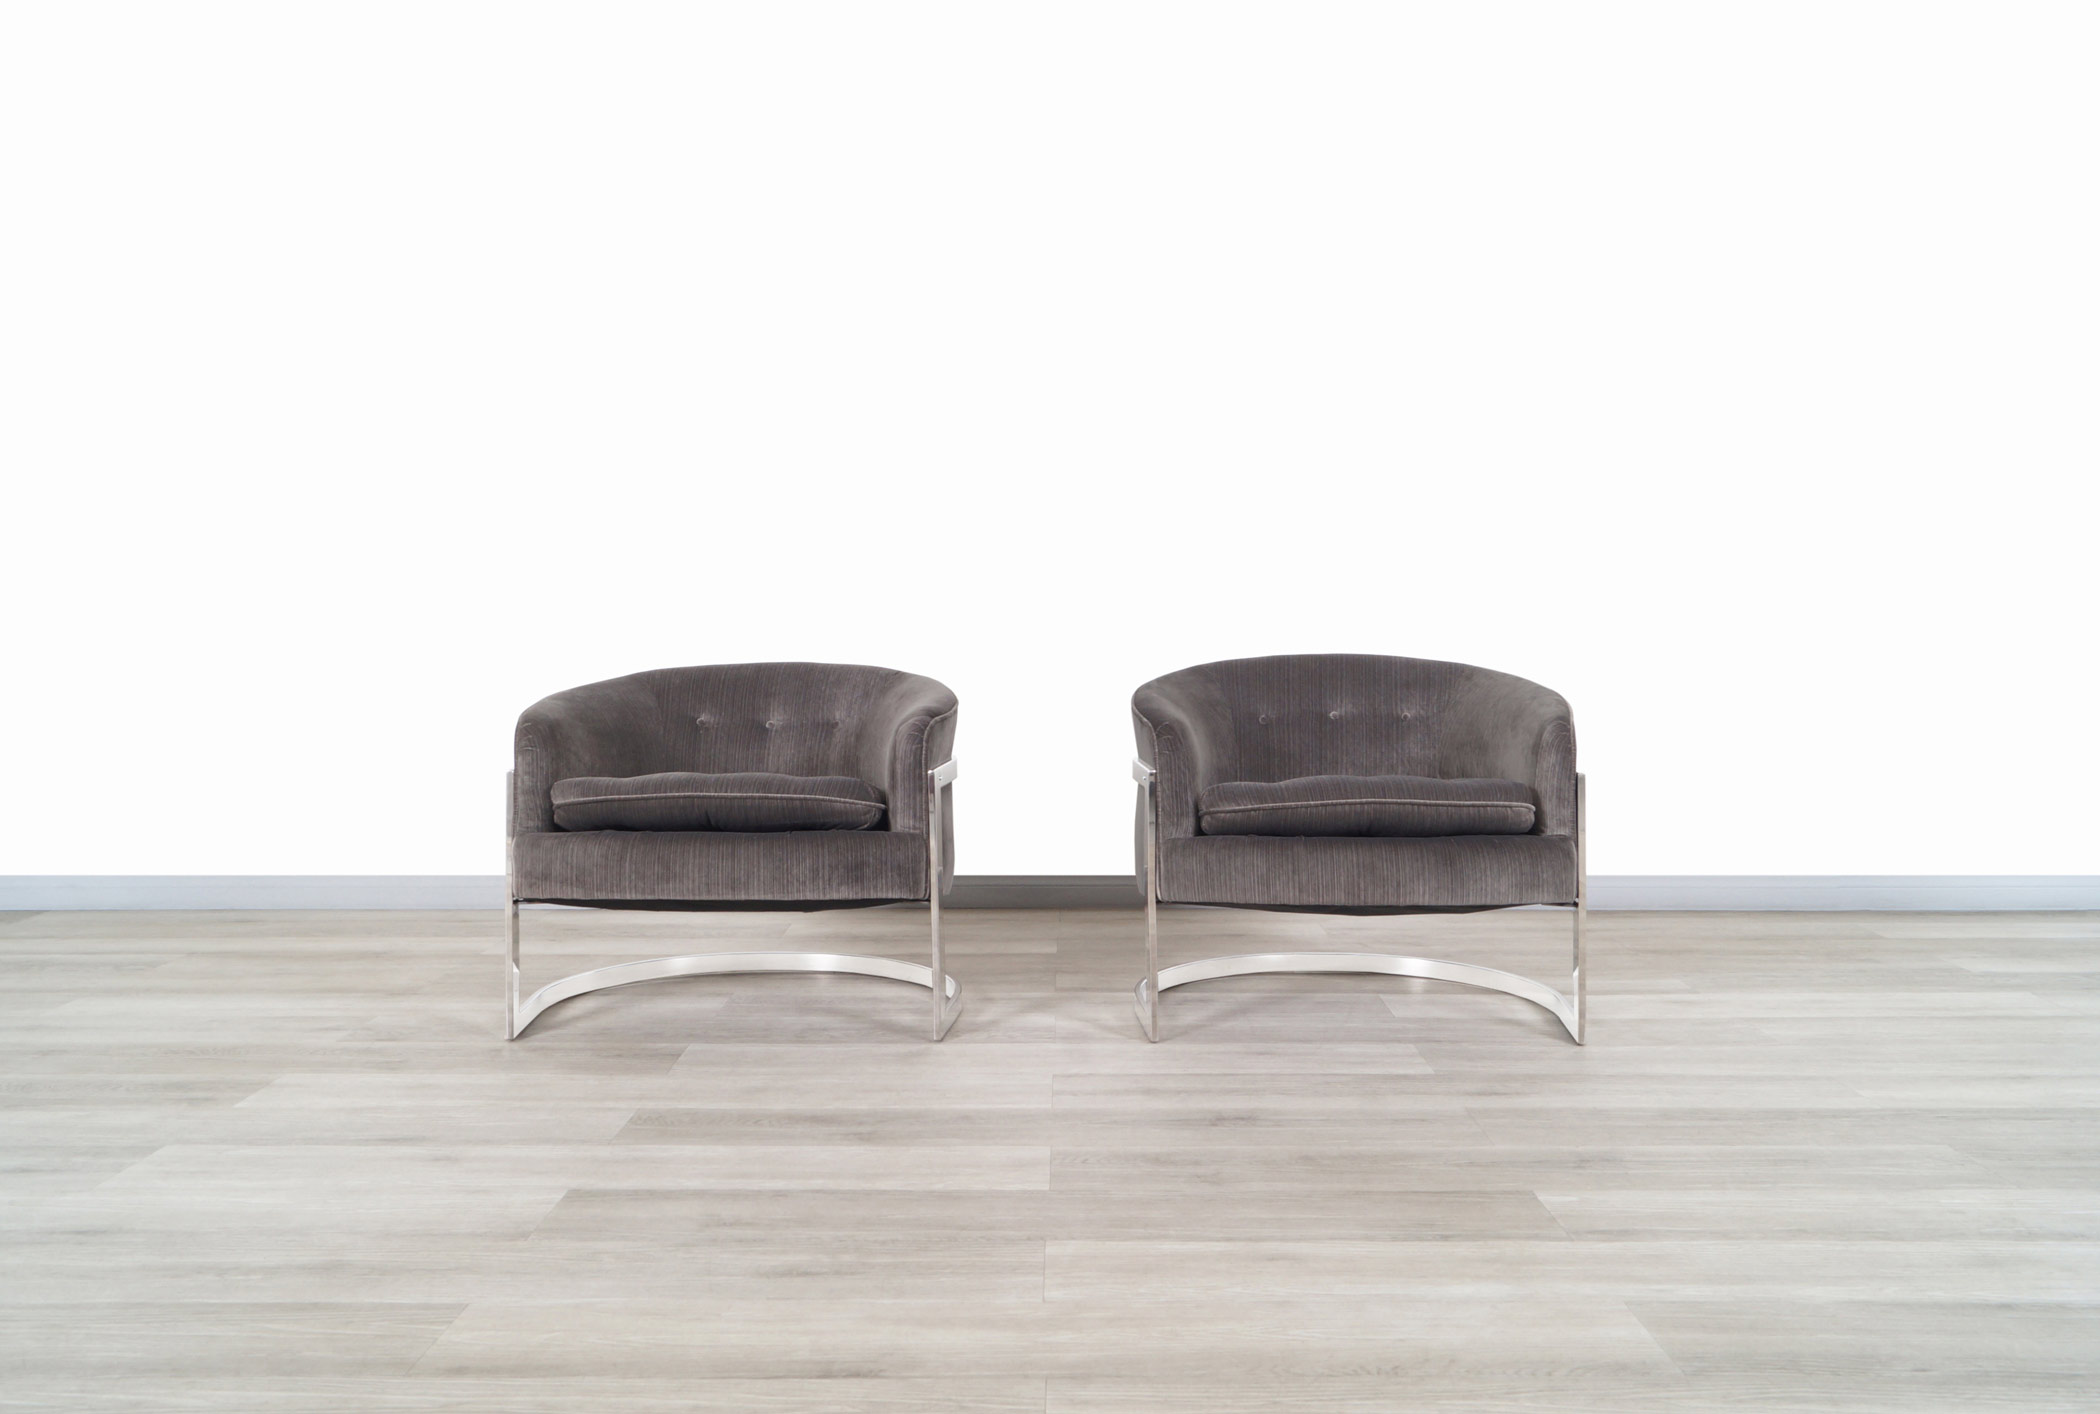 Vintage Chrome Barrel Lounge Chairs Attributed to Milo Baughman